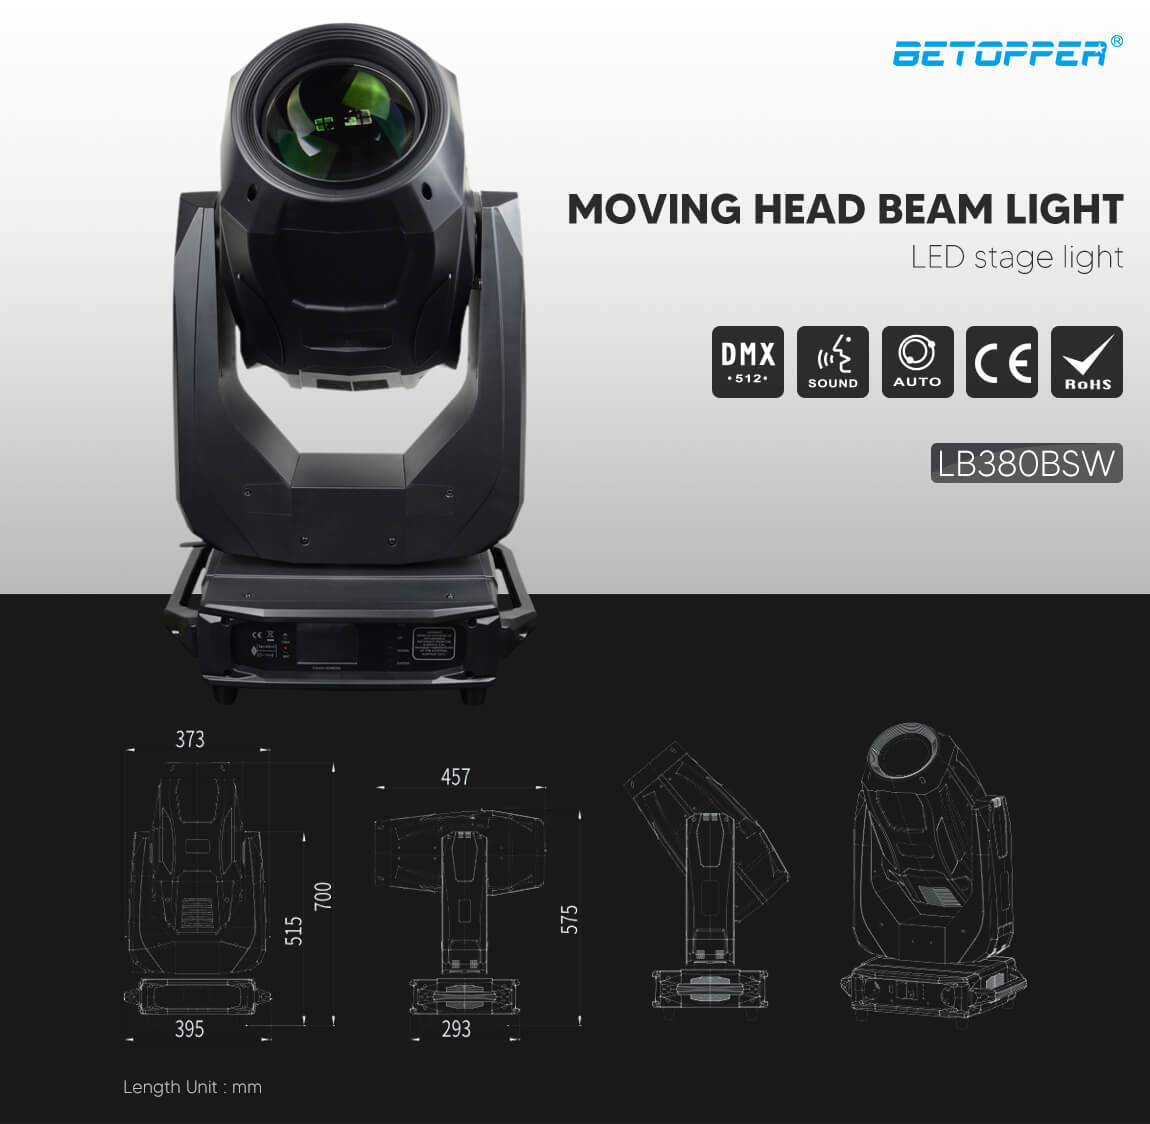 BETOPPER Beam Lamp Gobos Stage Led Light Moving Head Light LB380BSW Exterior Dimensions